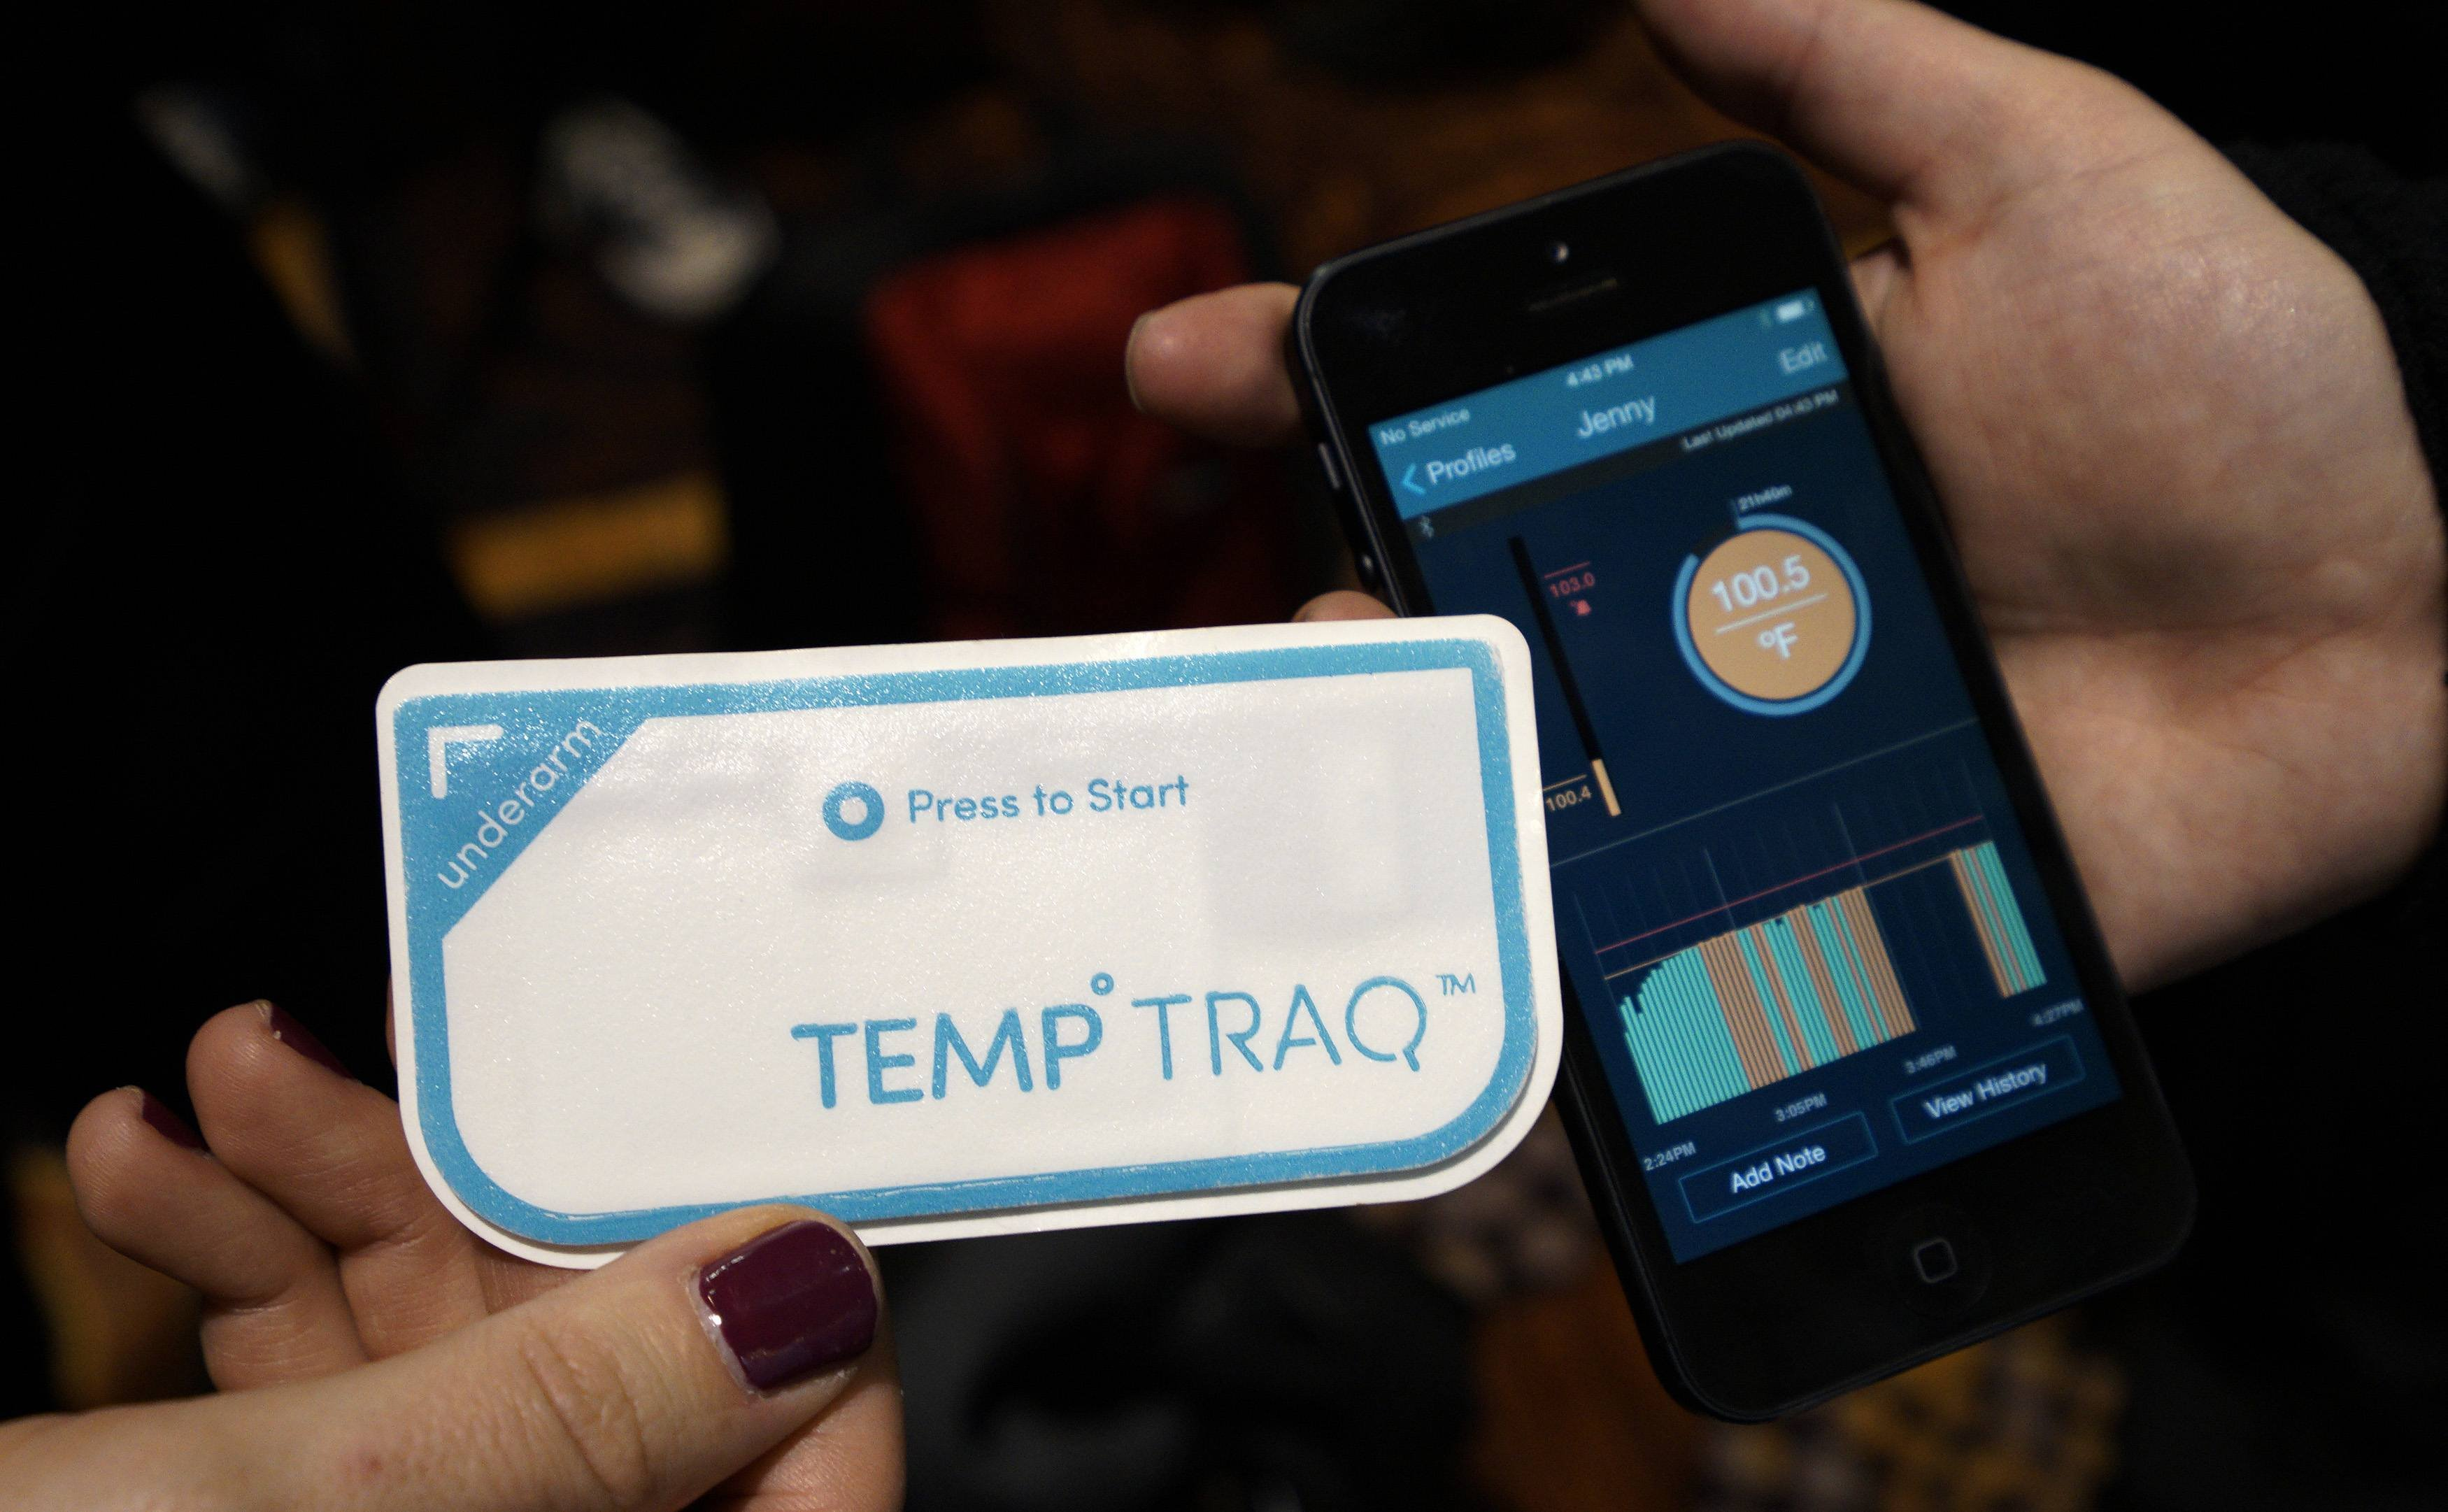 The TempTraq body temperature wearable bluetooth thermometer and its accompanying app are displayed at the International Consumer Electronics show (CES) in Las Vegas on Jan. 4, 2014.